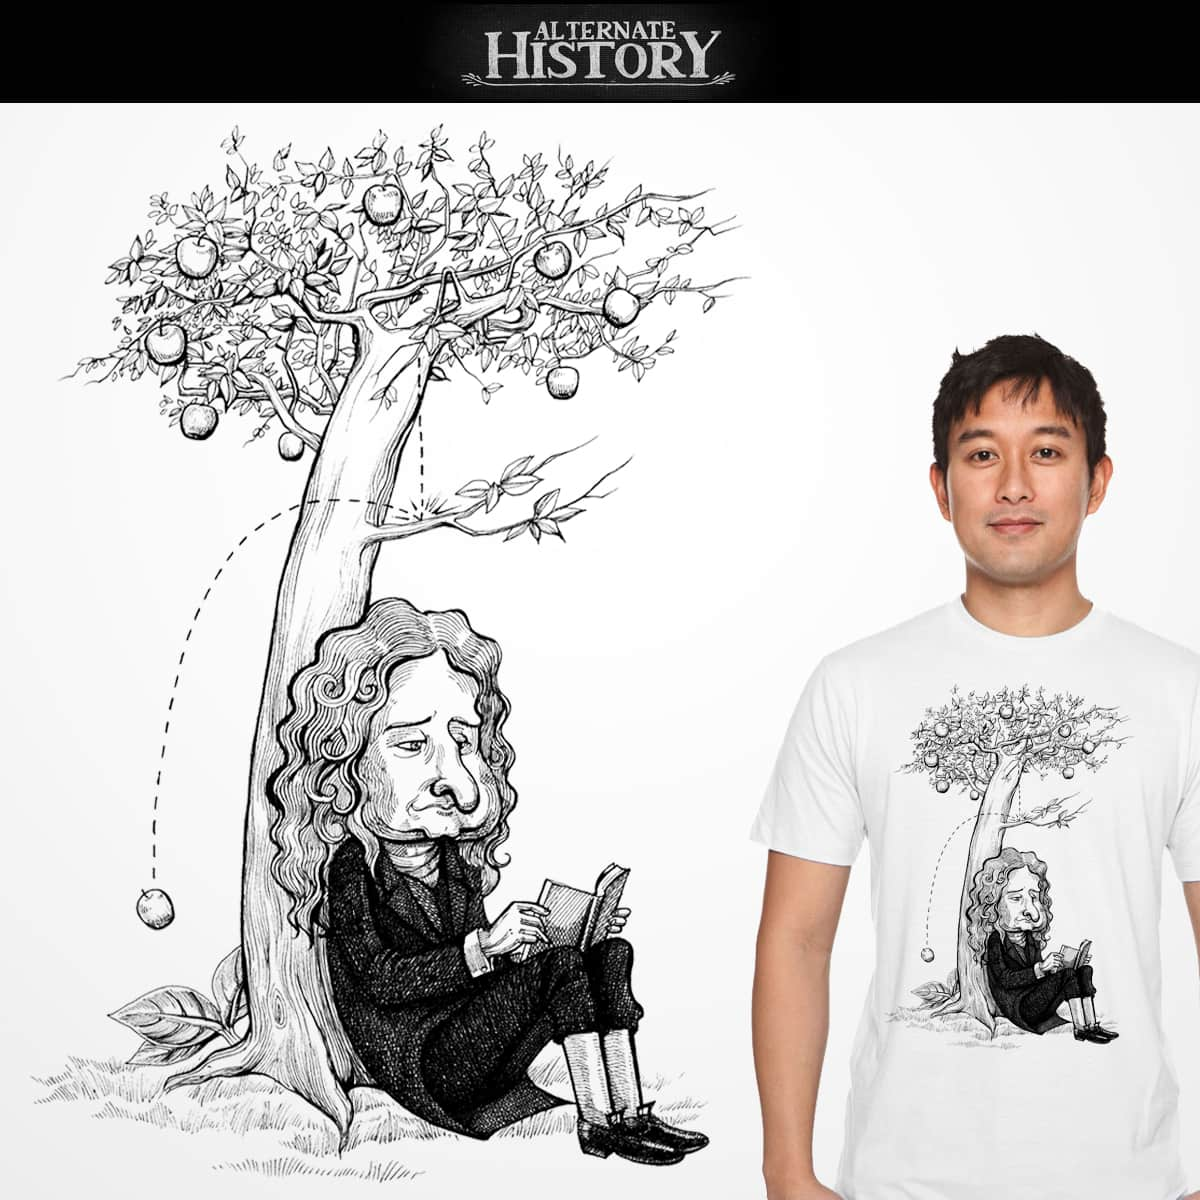 Inspiration lost! by orionchampadiyil on Threadless